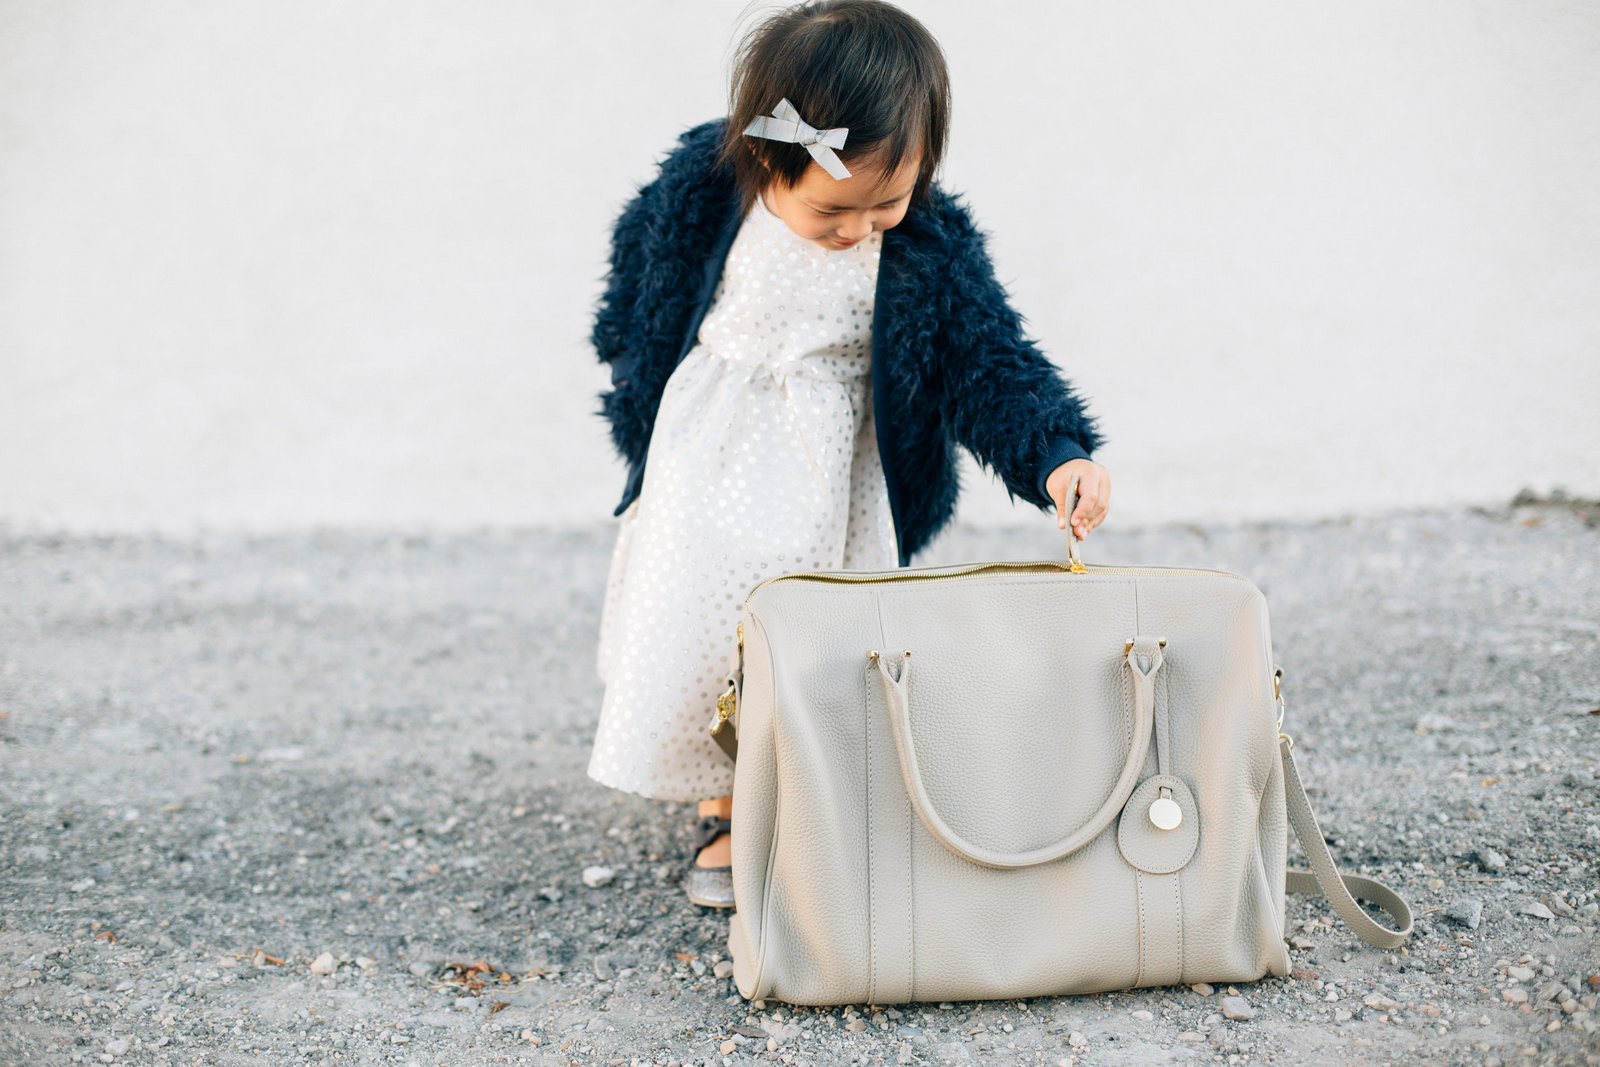 Baby girl with PacaPod diaper bag